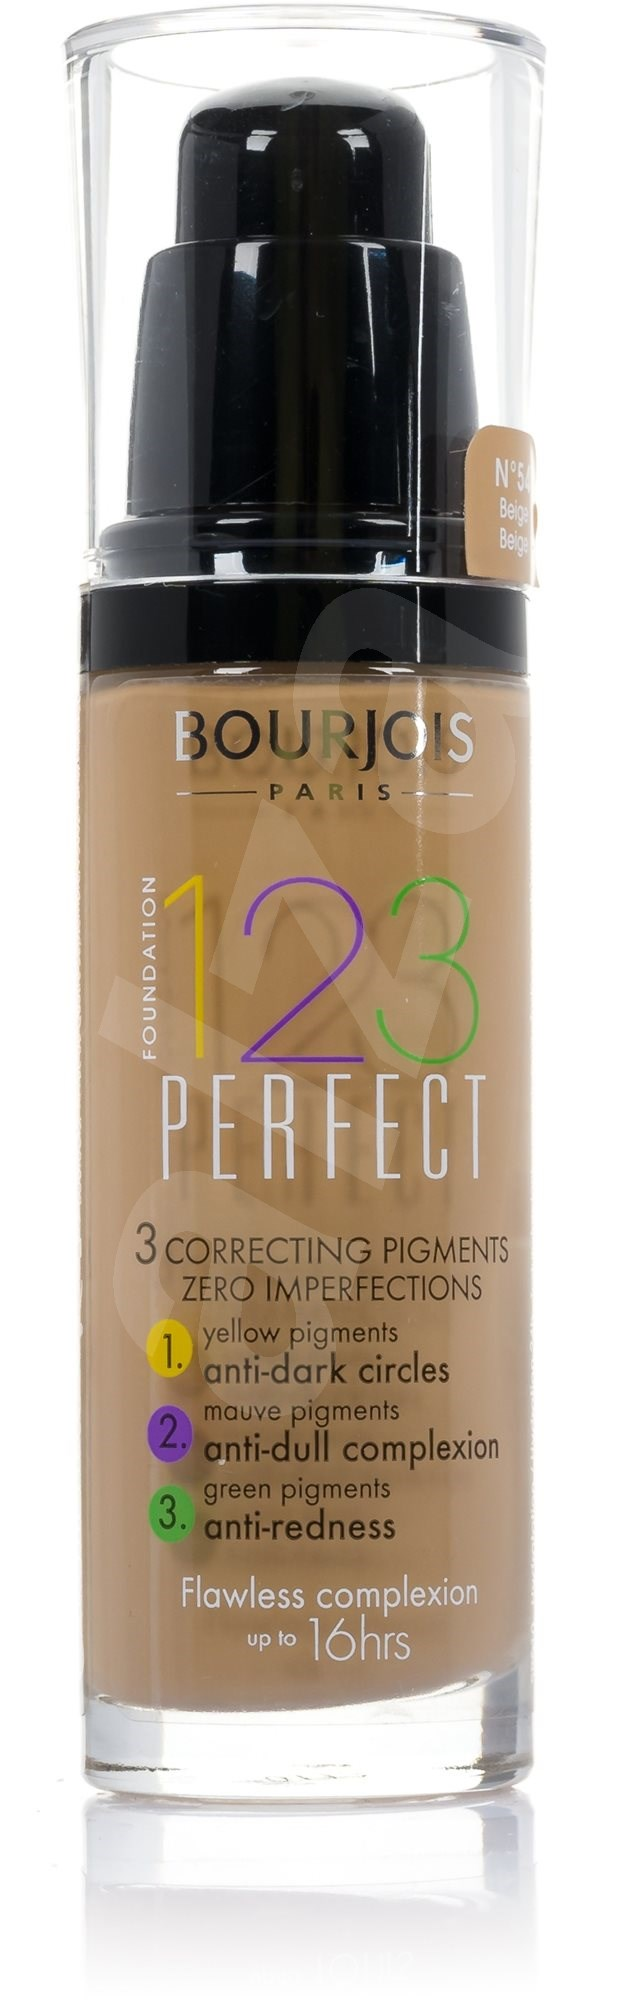 bourjois 123 perfect foundation 54 beige 30 ml mejkap alza. Black Bedroom Furniture Sets. Home Design Ideas